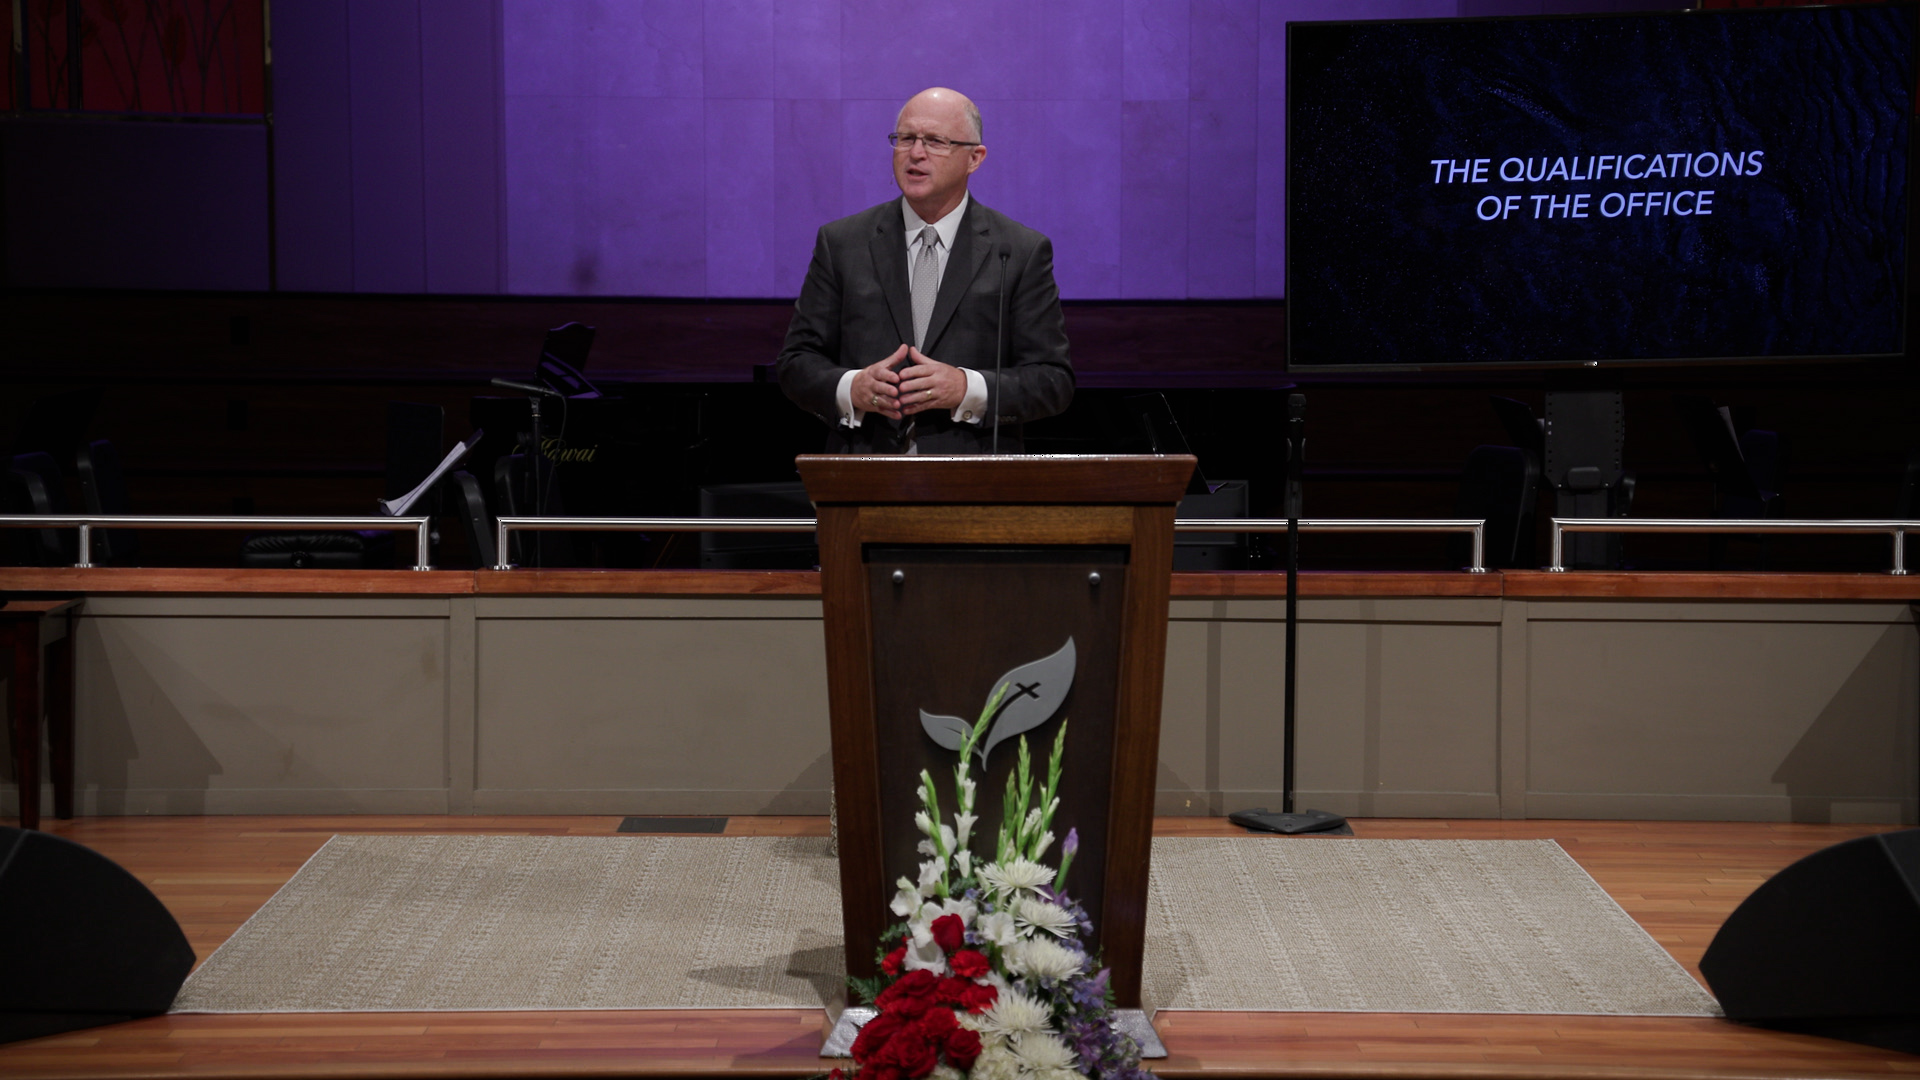 Pastor Paul Chappell: A Good Work